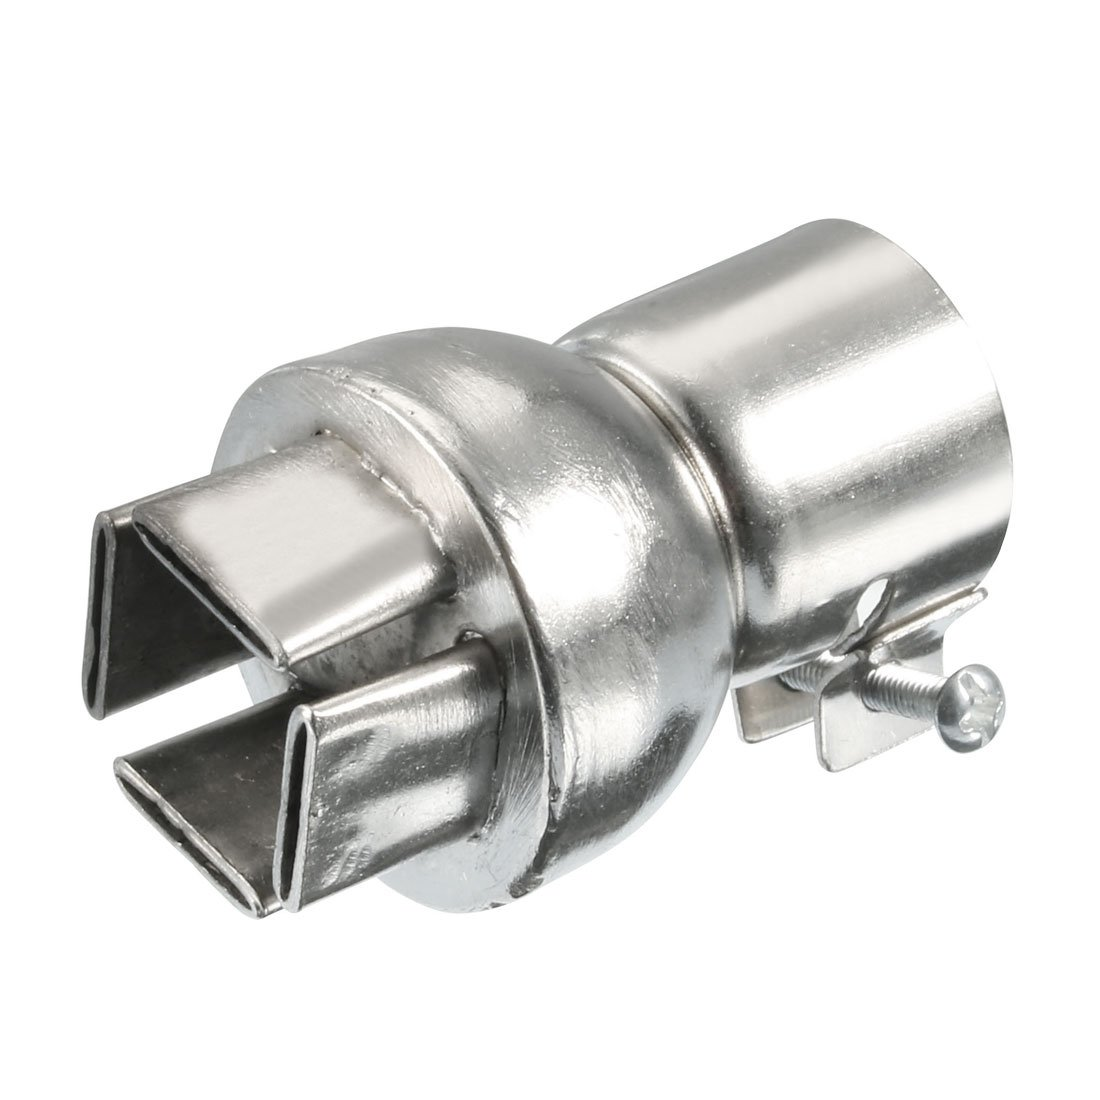 uxcell Stainless Steel BQFP 17x17mm Nozzle for 850D SMD Hot Air Rework Station